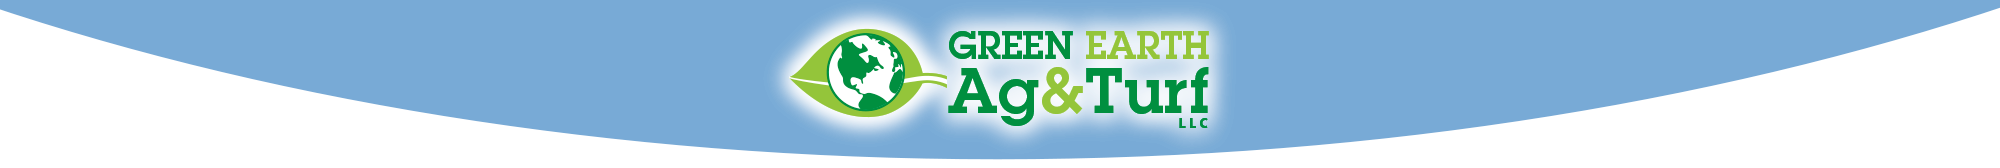 Green-Earth-Ag-Turf-header-1